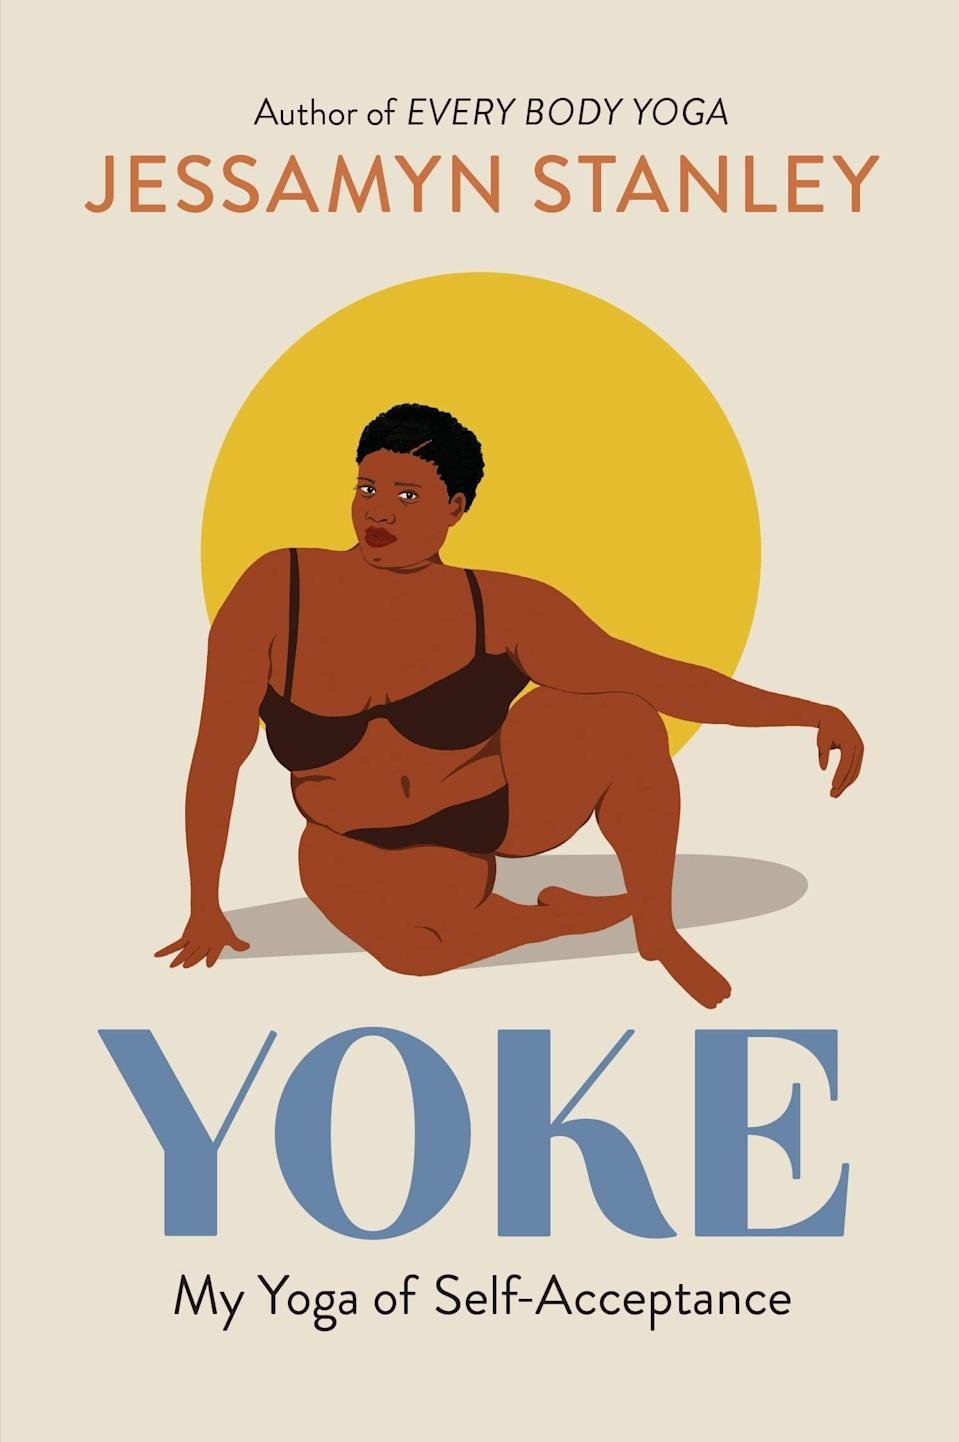 """<p>Jessamyn Stanley's <span><strong>Yoke</strong></span> is a thought-provoking collection of essays about the author's pursuit of finding """"yoga in the everyday."""" From taking on the whiteness of Western yoga practices to sharing the hard work that goes into fostering self-acceptance, Stanley's essays are eye-opening, informative, and always a joy to read. </p> <p><em>Out June 22</em></p>"""